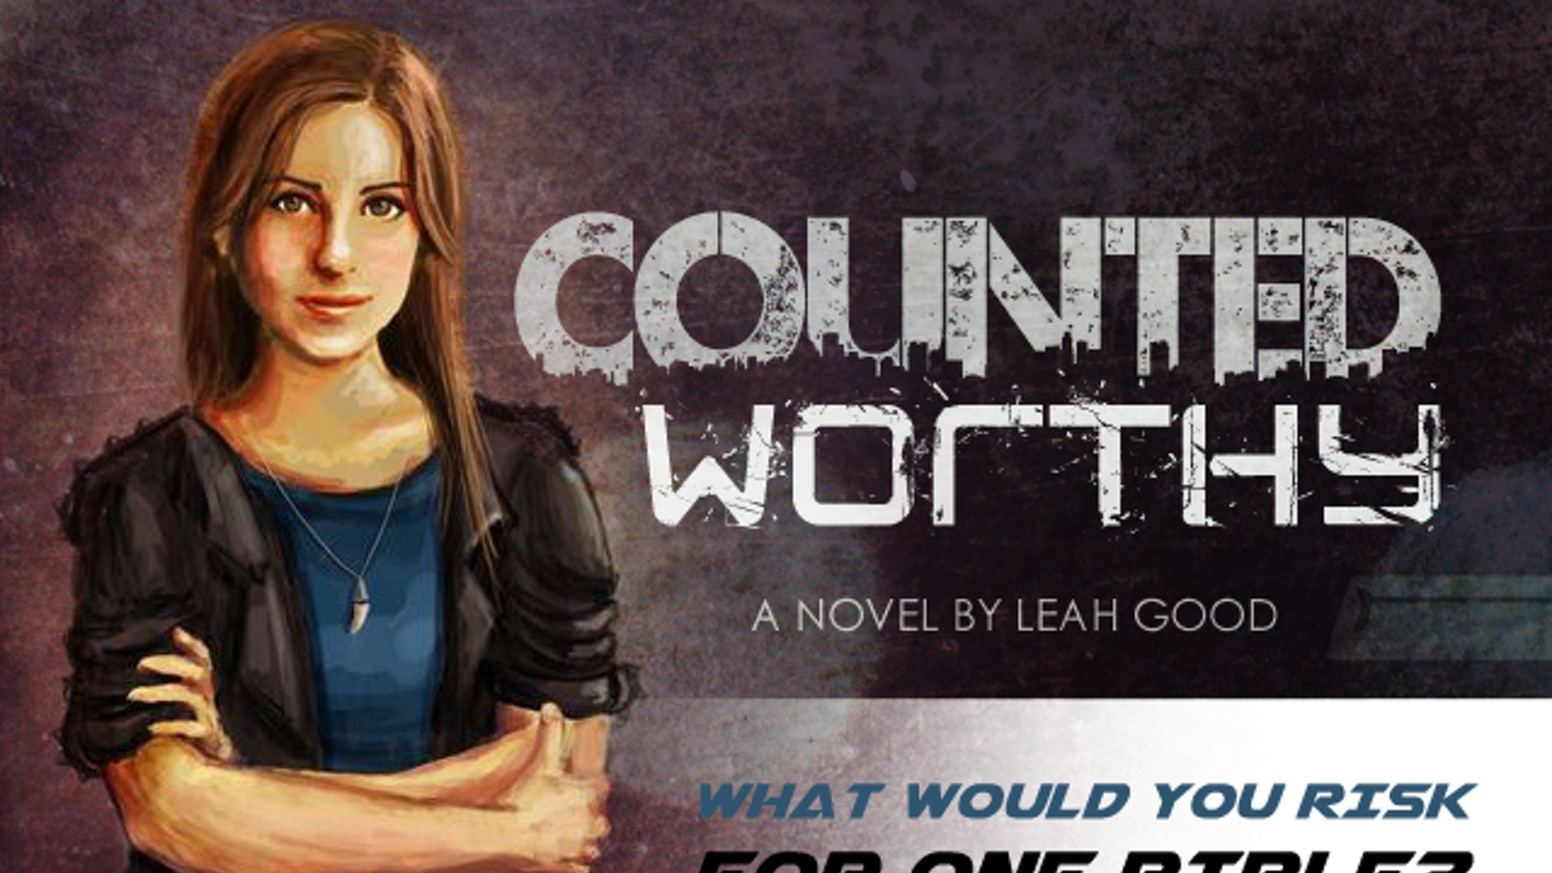 Do you love fiction with a Christian worldview? Show your support by funding Counted Worthy, a novel about the persecuted church.